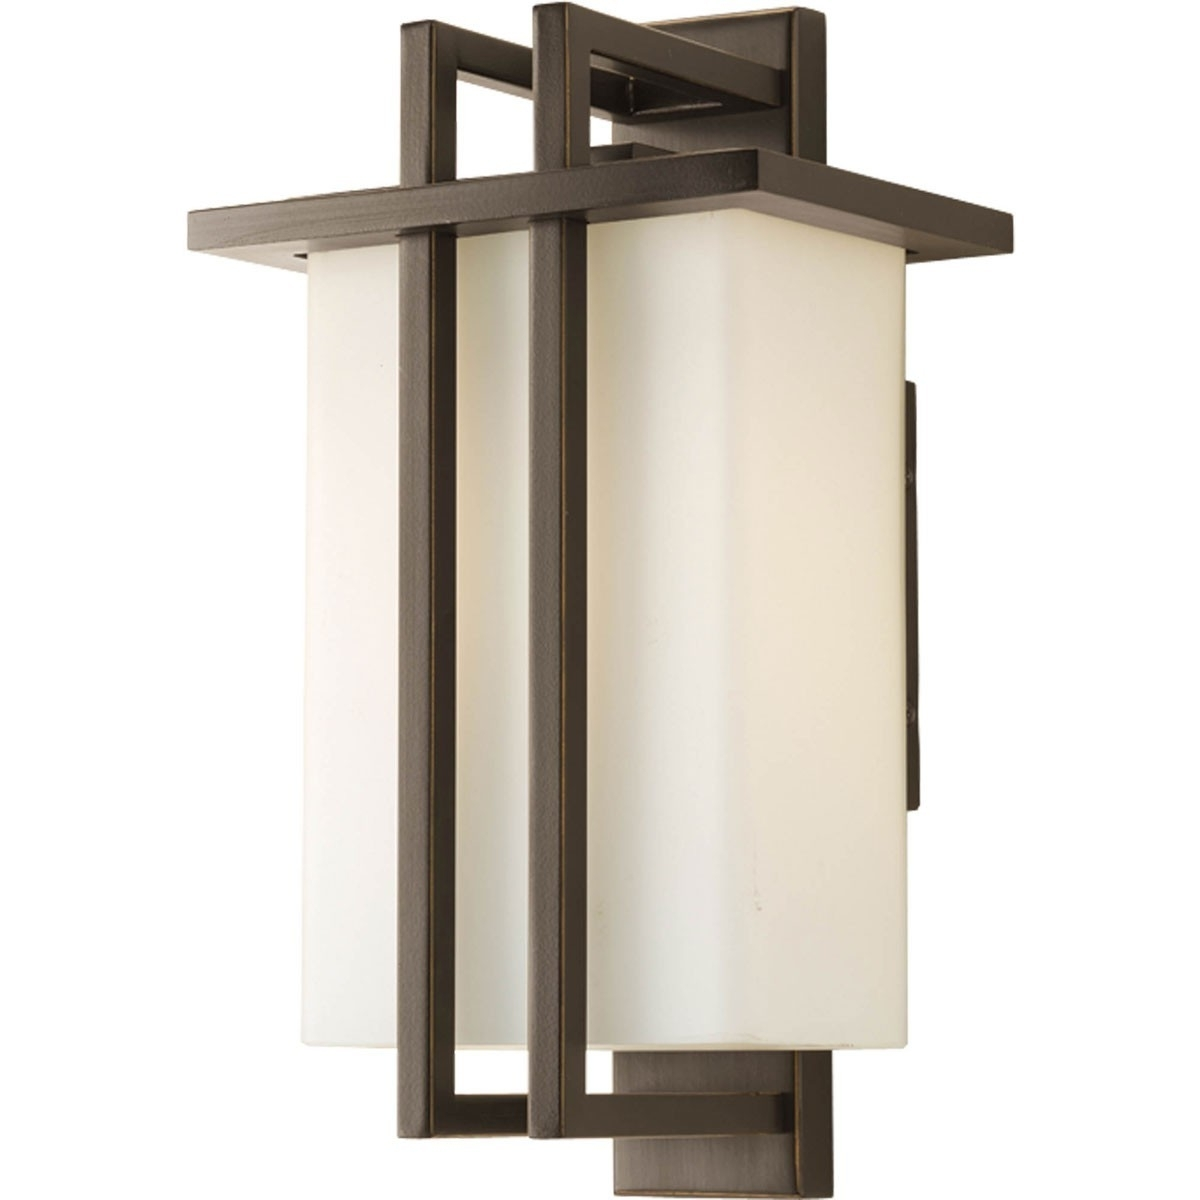 Outdoor Small Hanging Lantern Light Fixture – Progress Lighting Pertaining To Well Liked Outdoor Hanging Lantern Lights (View 16 of 20)